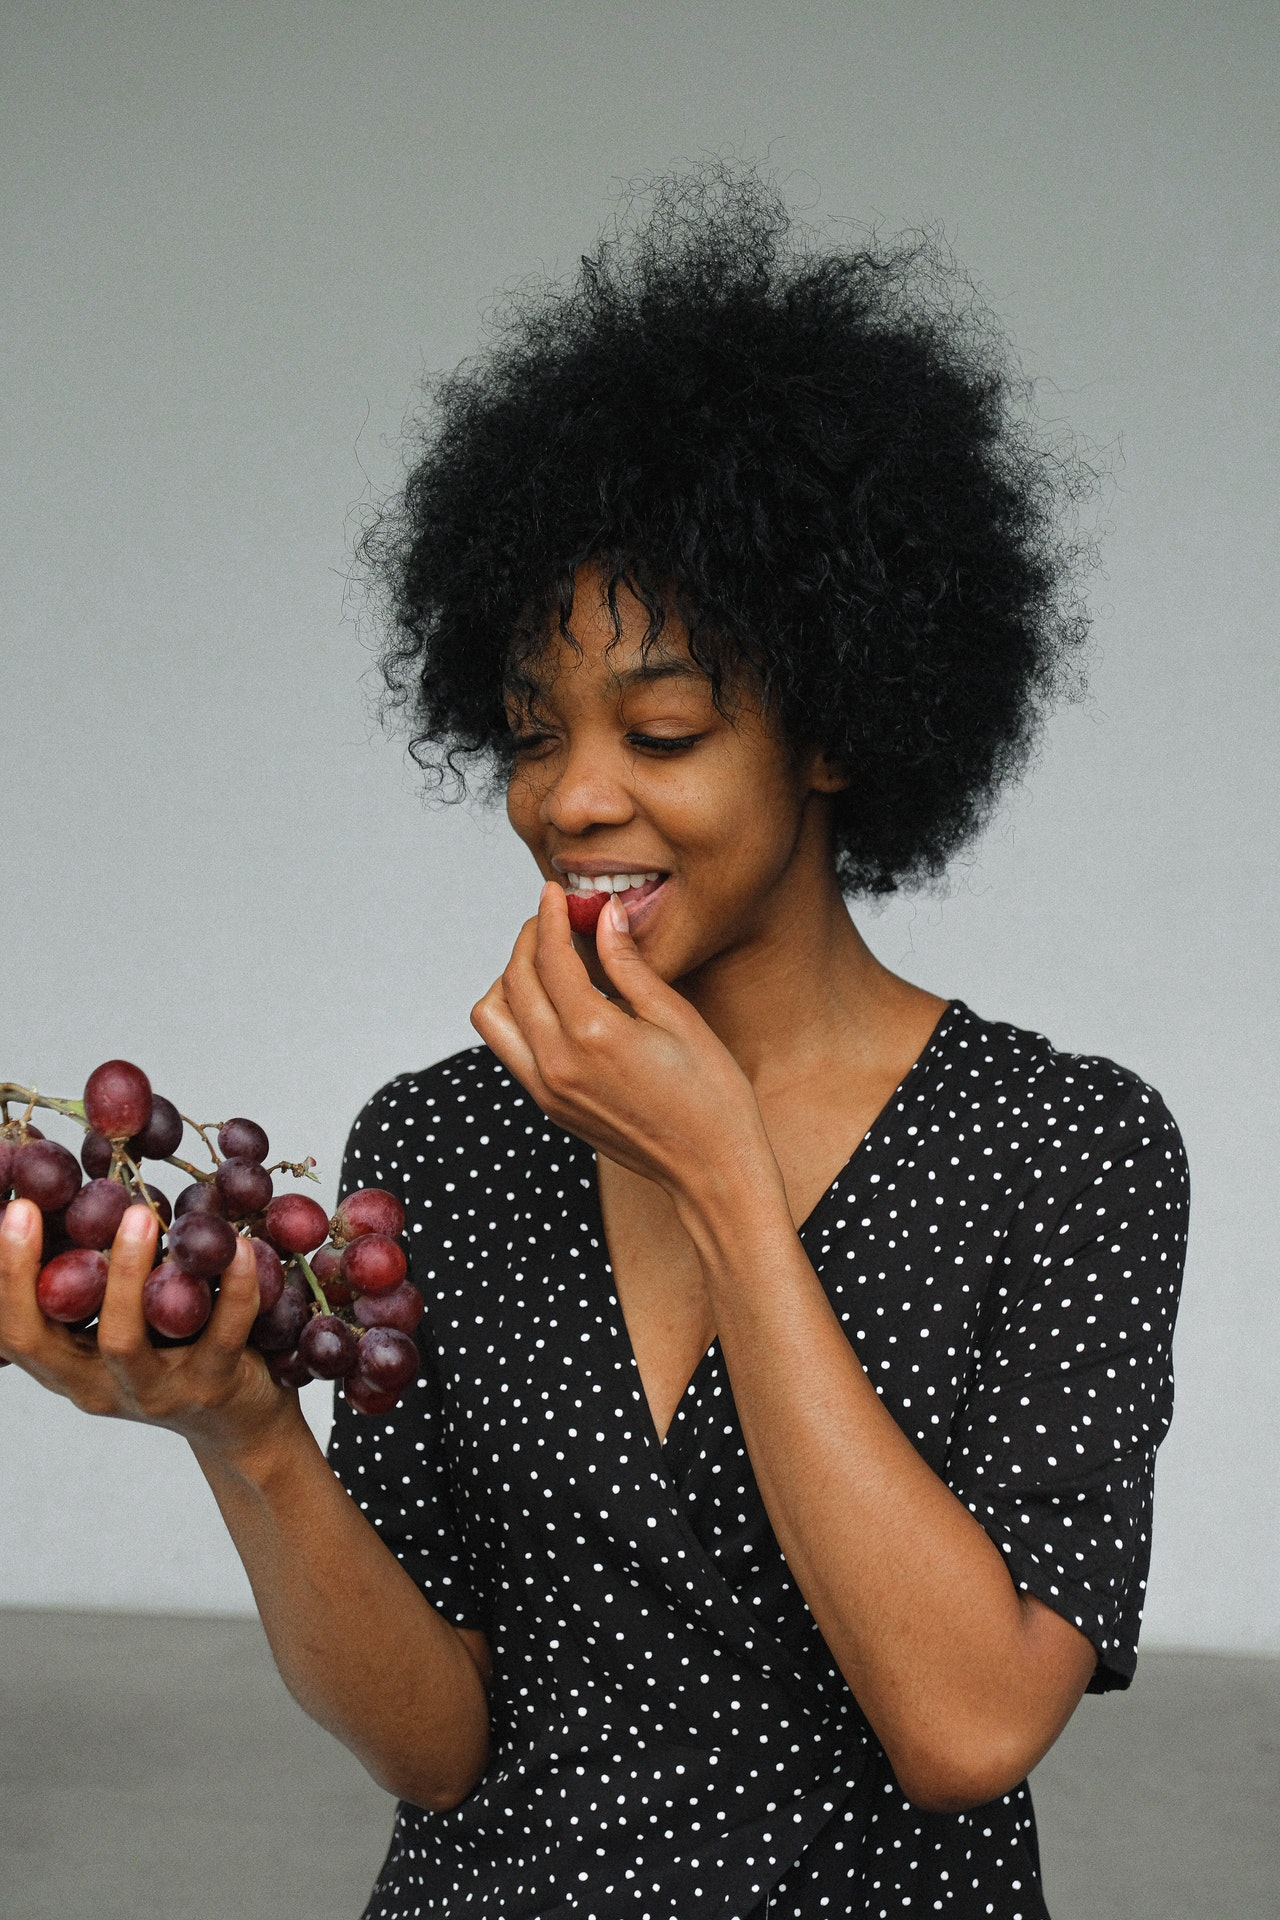 woman eating purple grapes